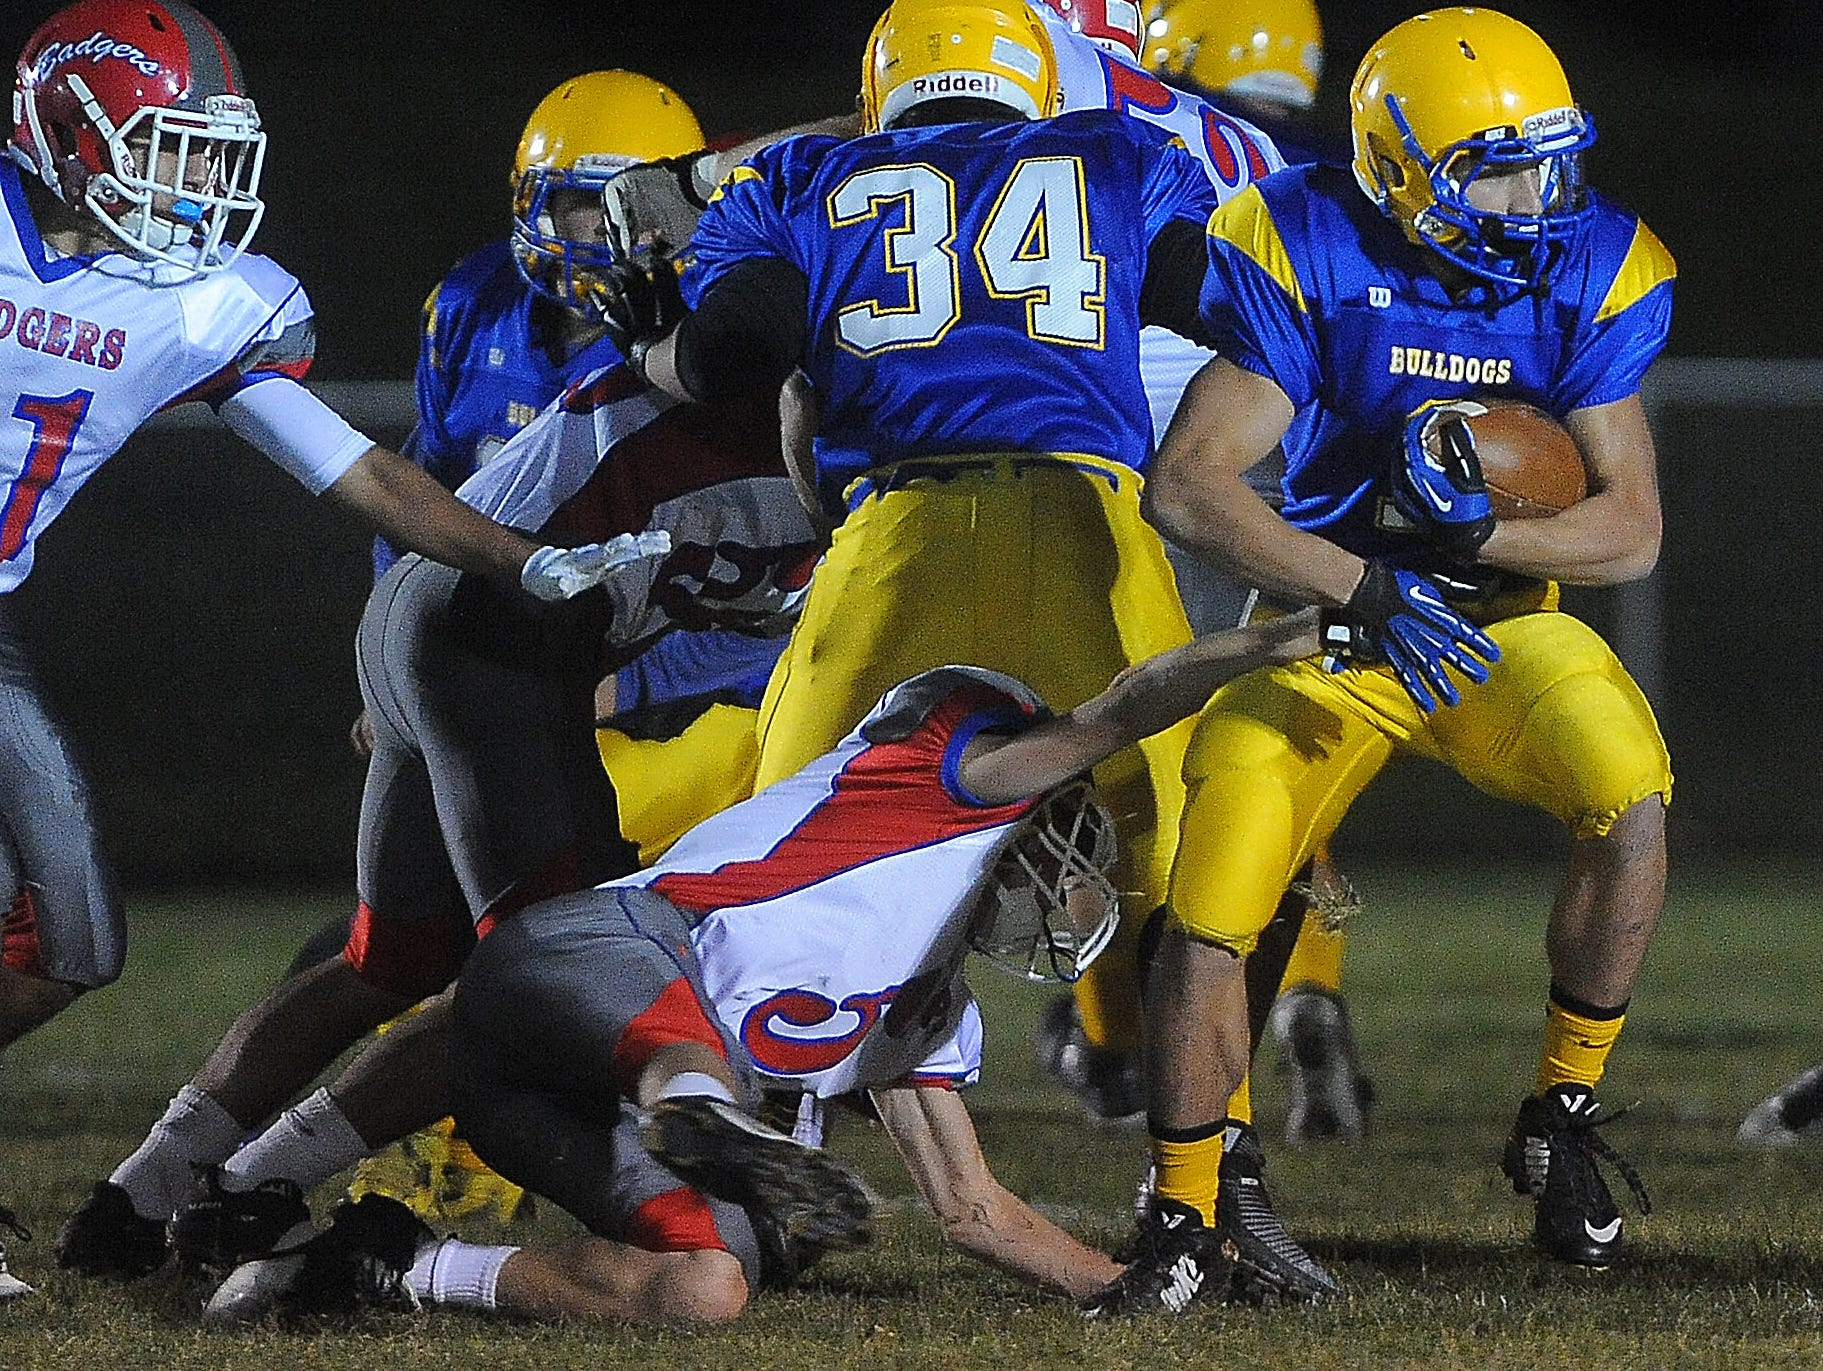 Baltic High School's Sam Clark drags Arlington/Lake Preston's Tyson Toucedo to gain yards during their game in Baltic on Tuesday, Oct. 27, 2015.